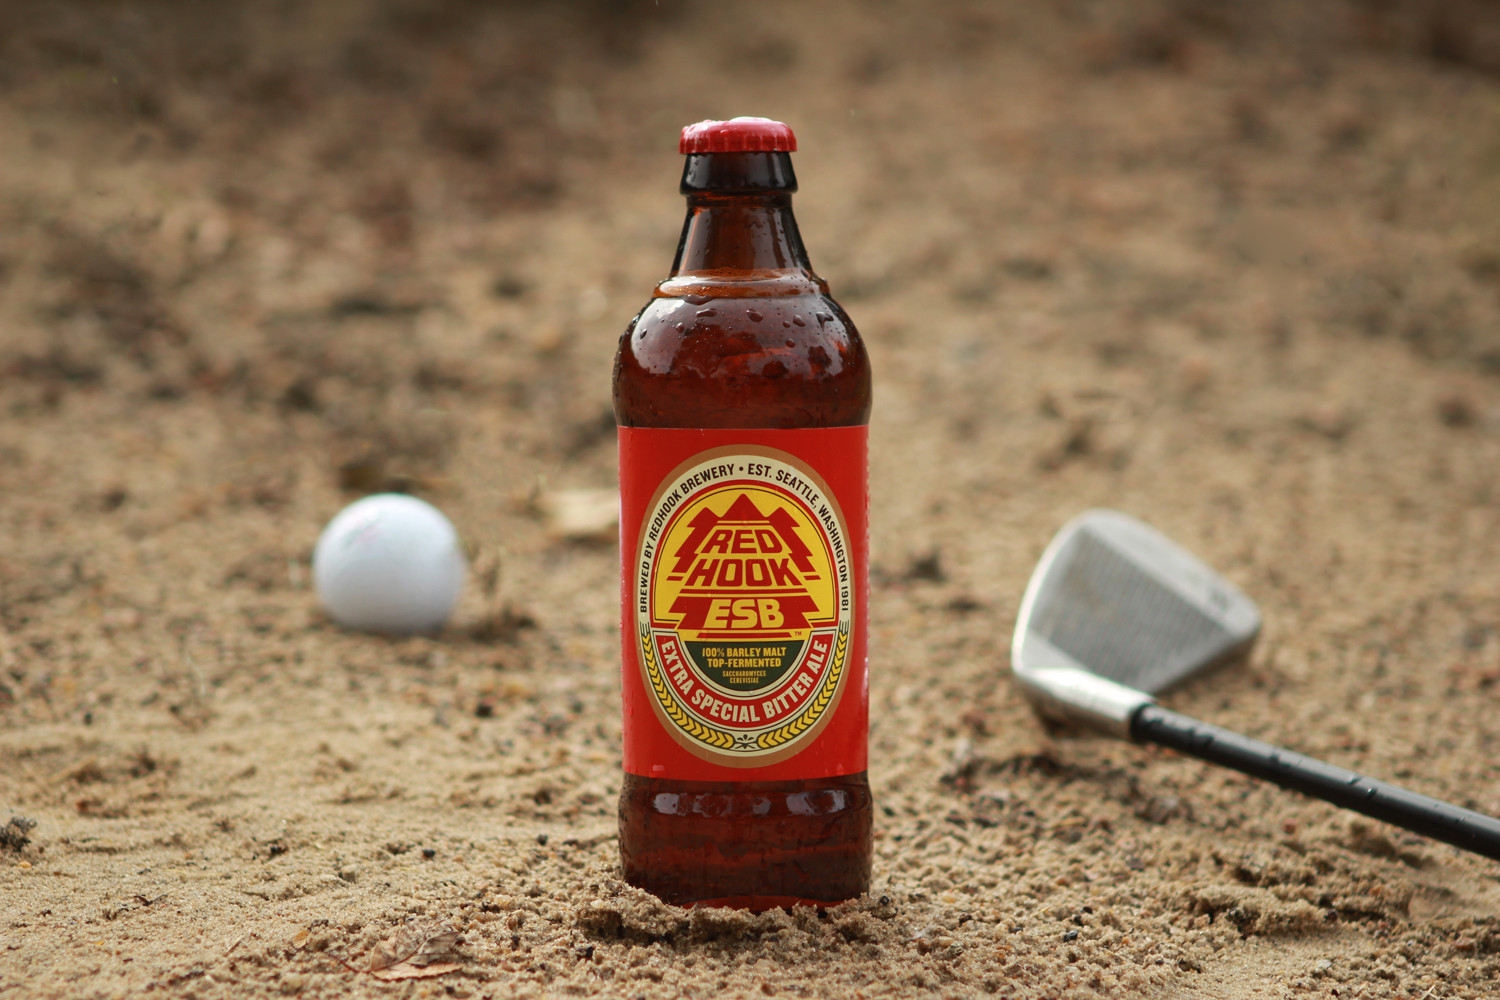 Redhook Extra Special Bitter (ESB) is a summer beer perfect for golf.